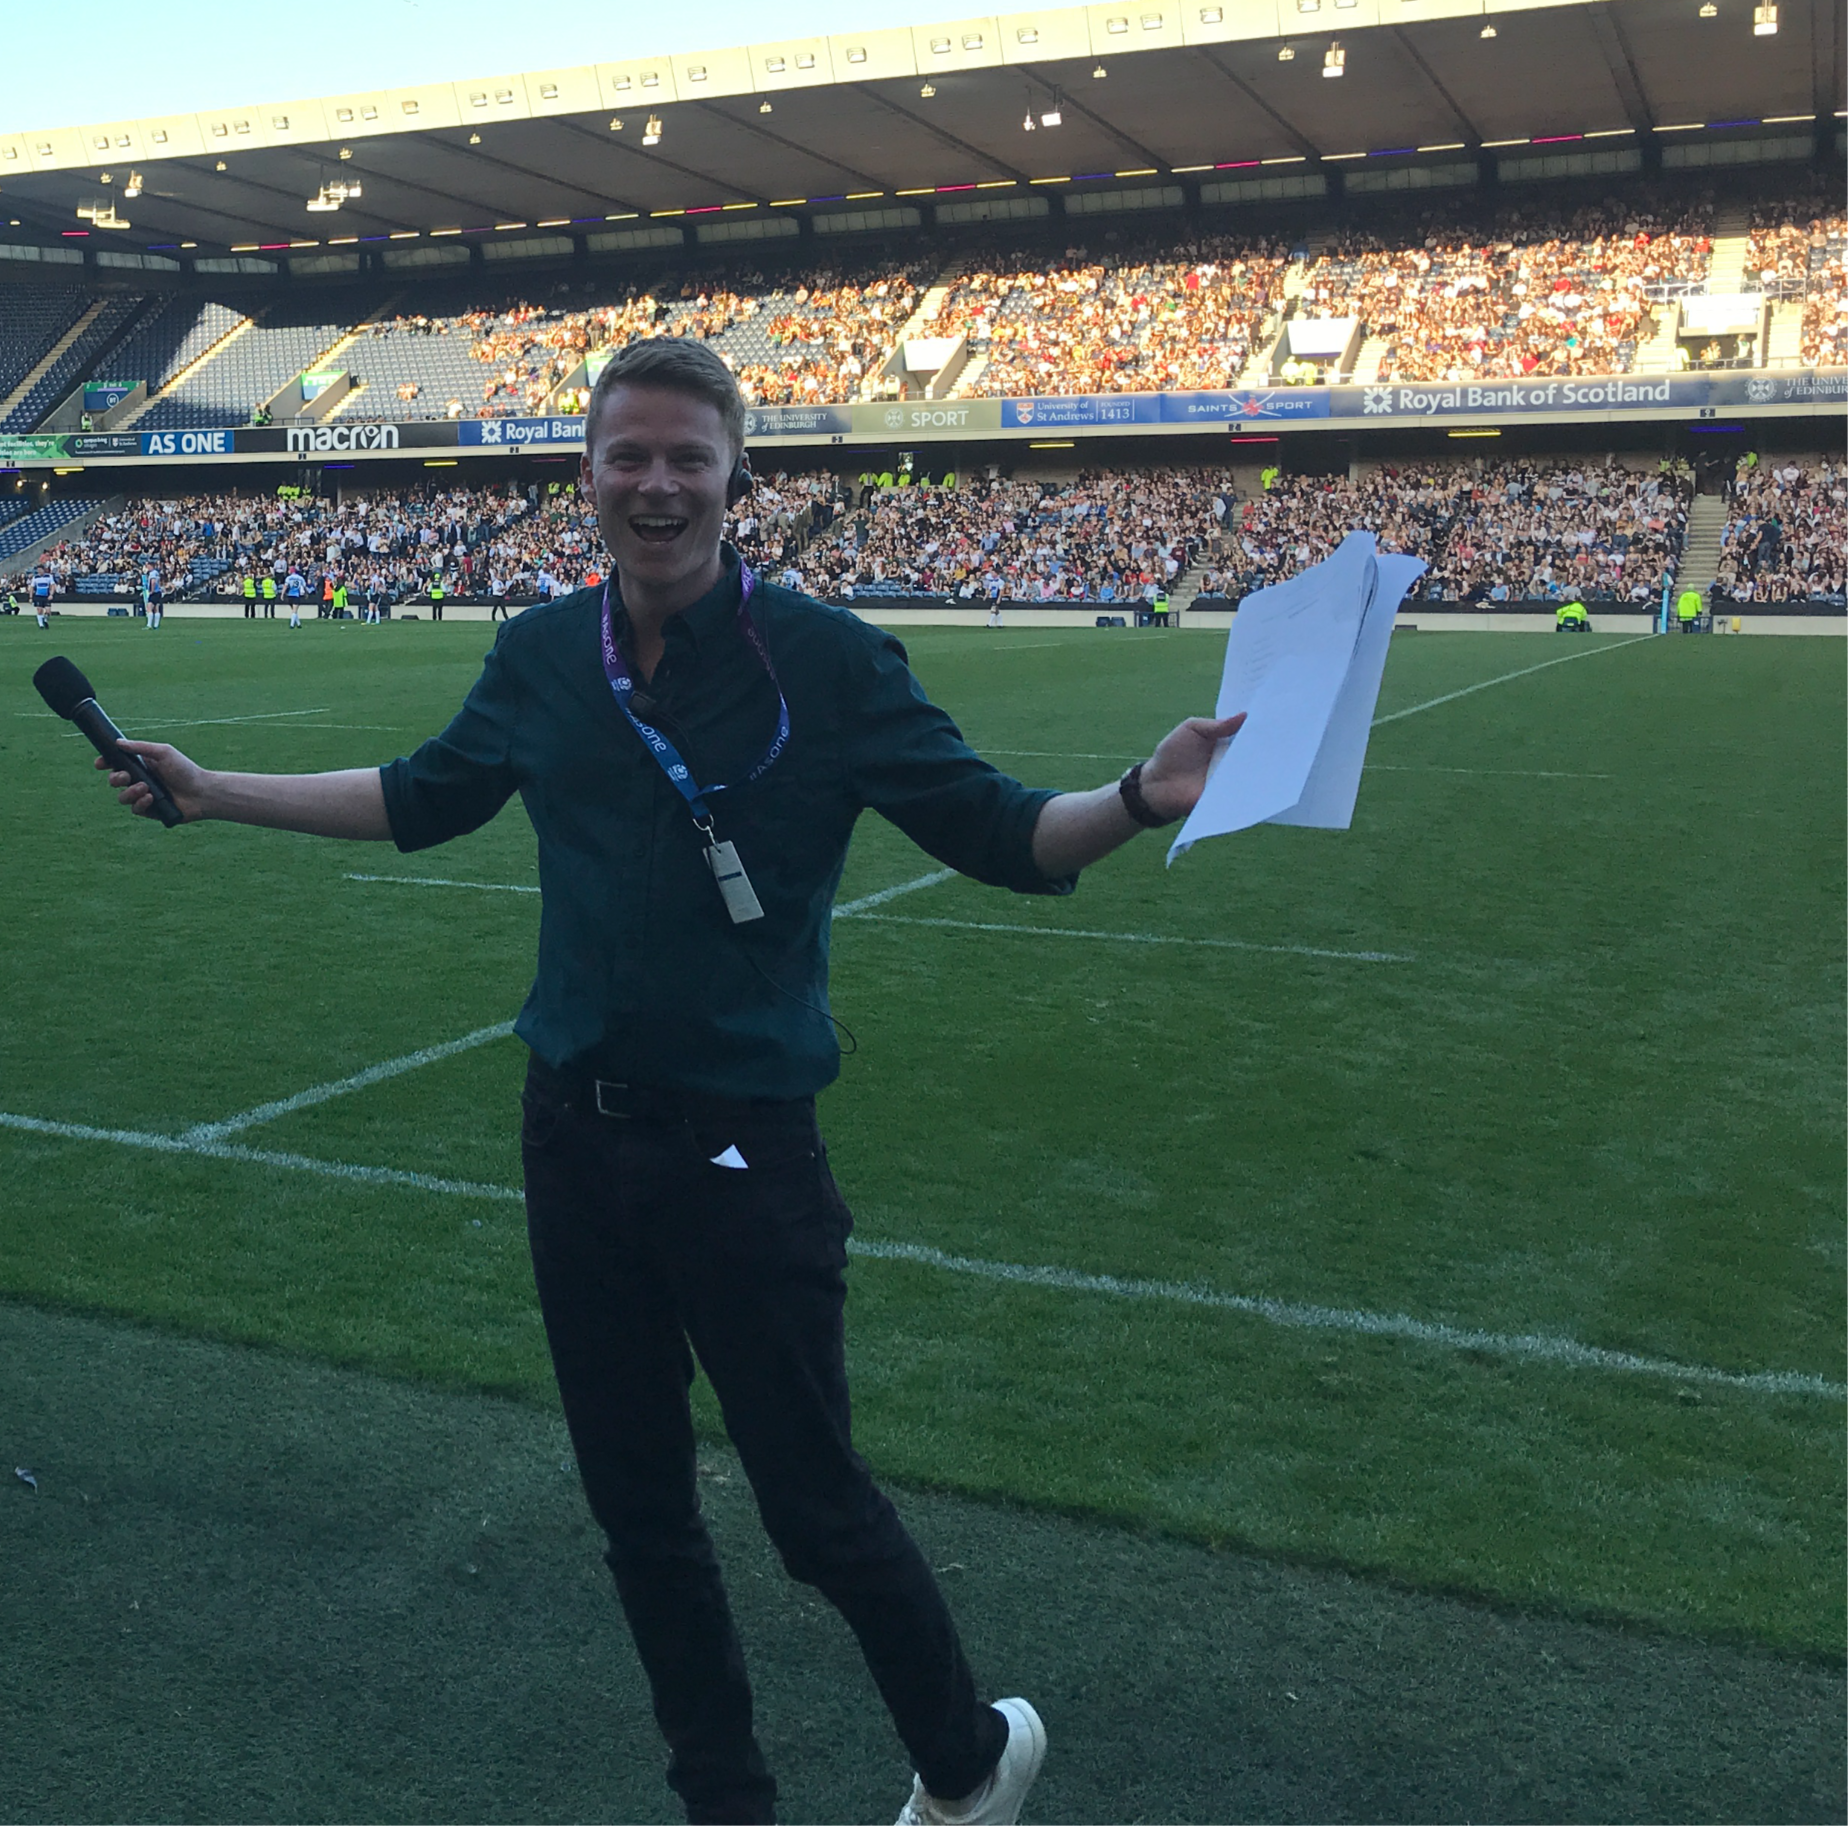 Presenting at BT Murrayfield